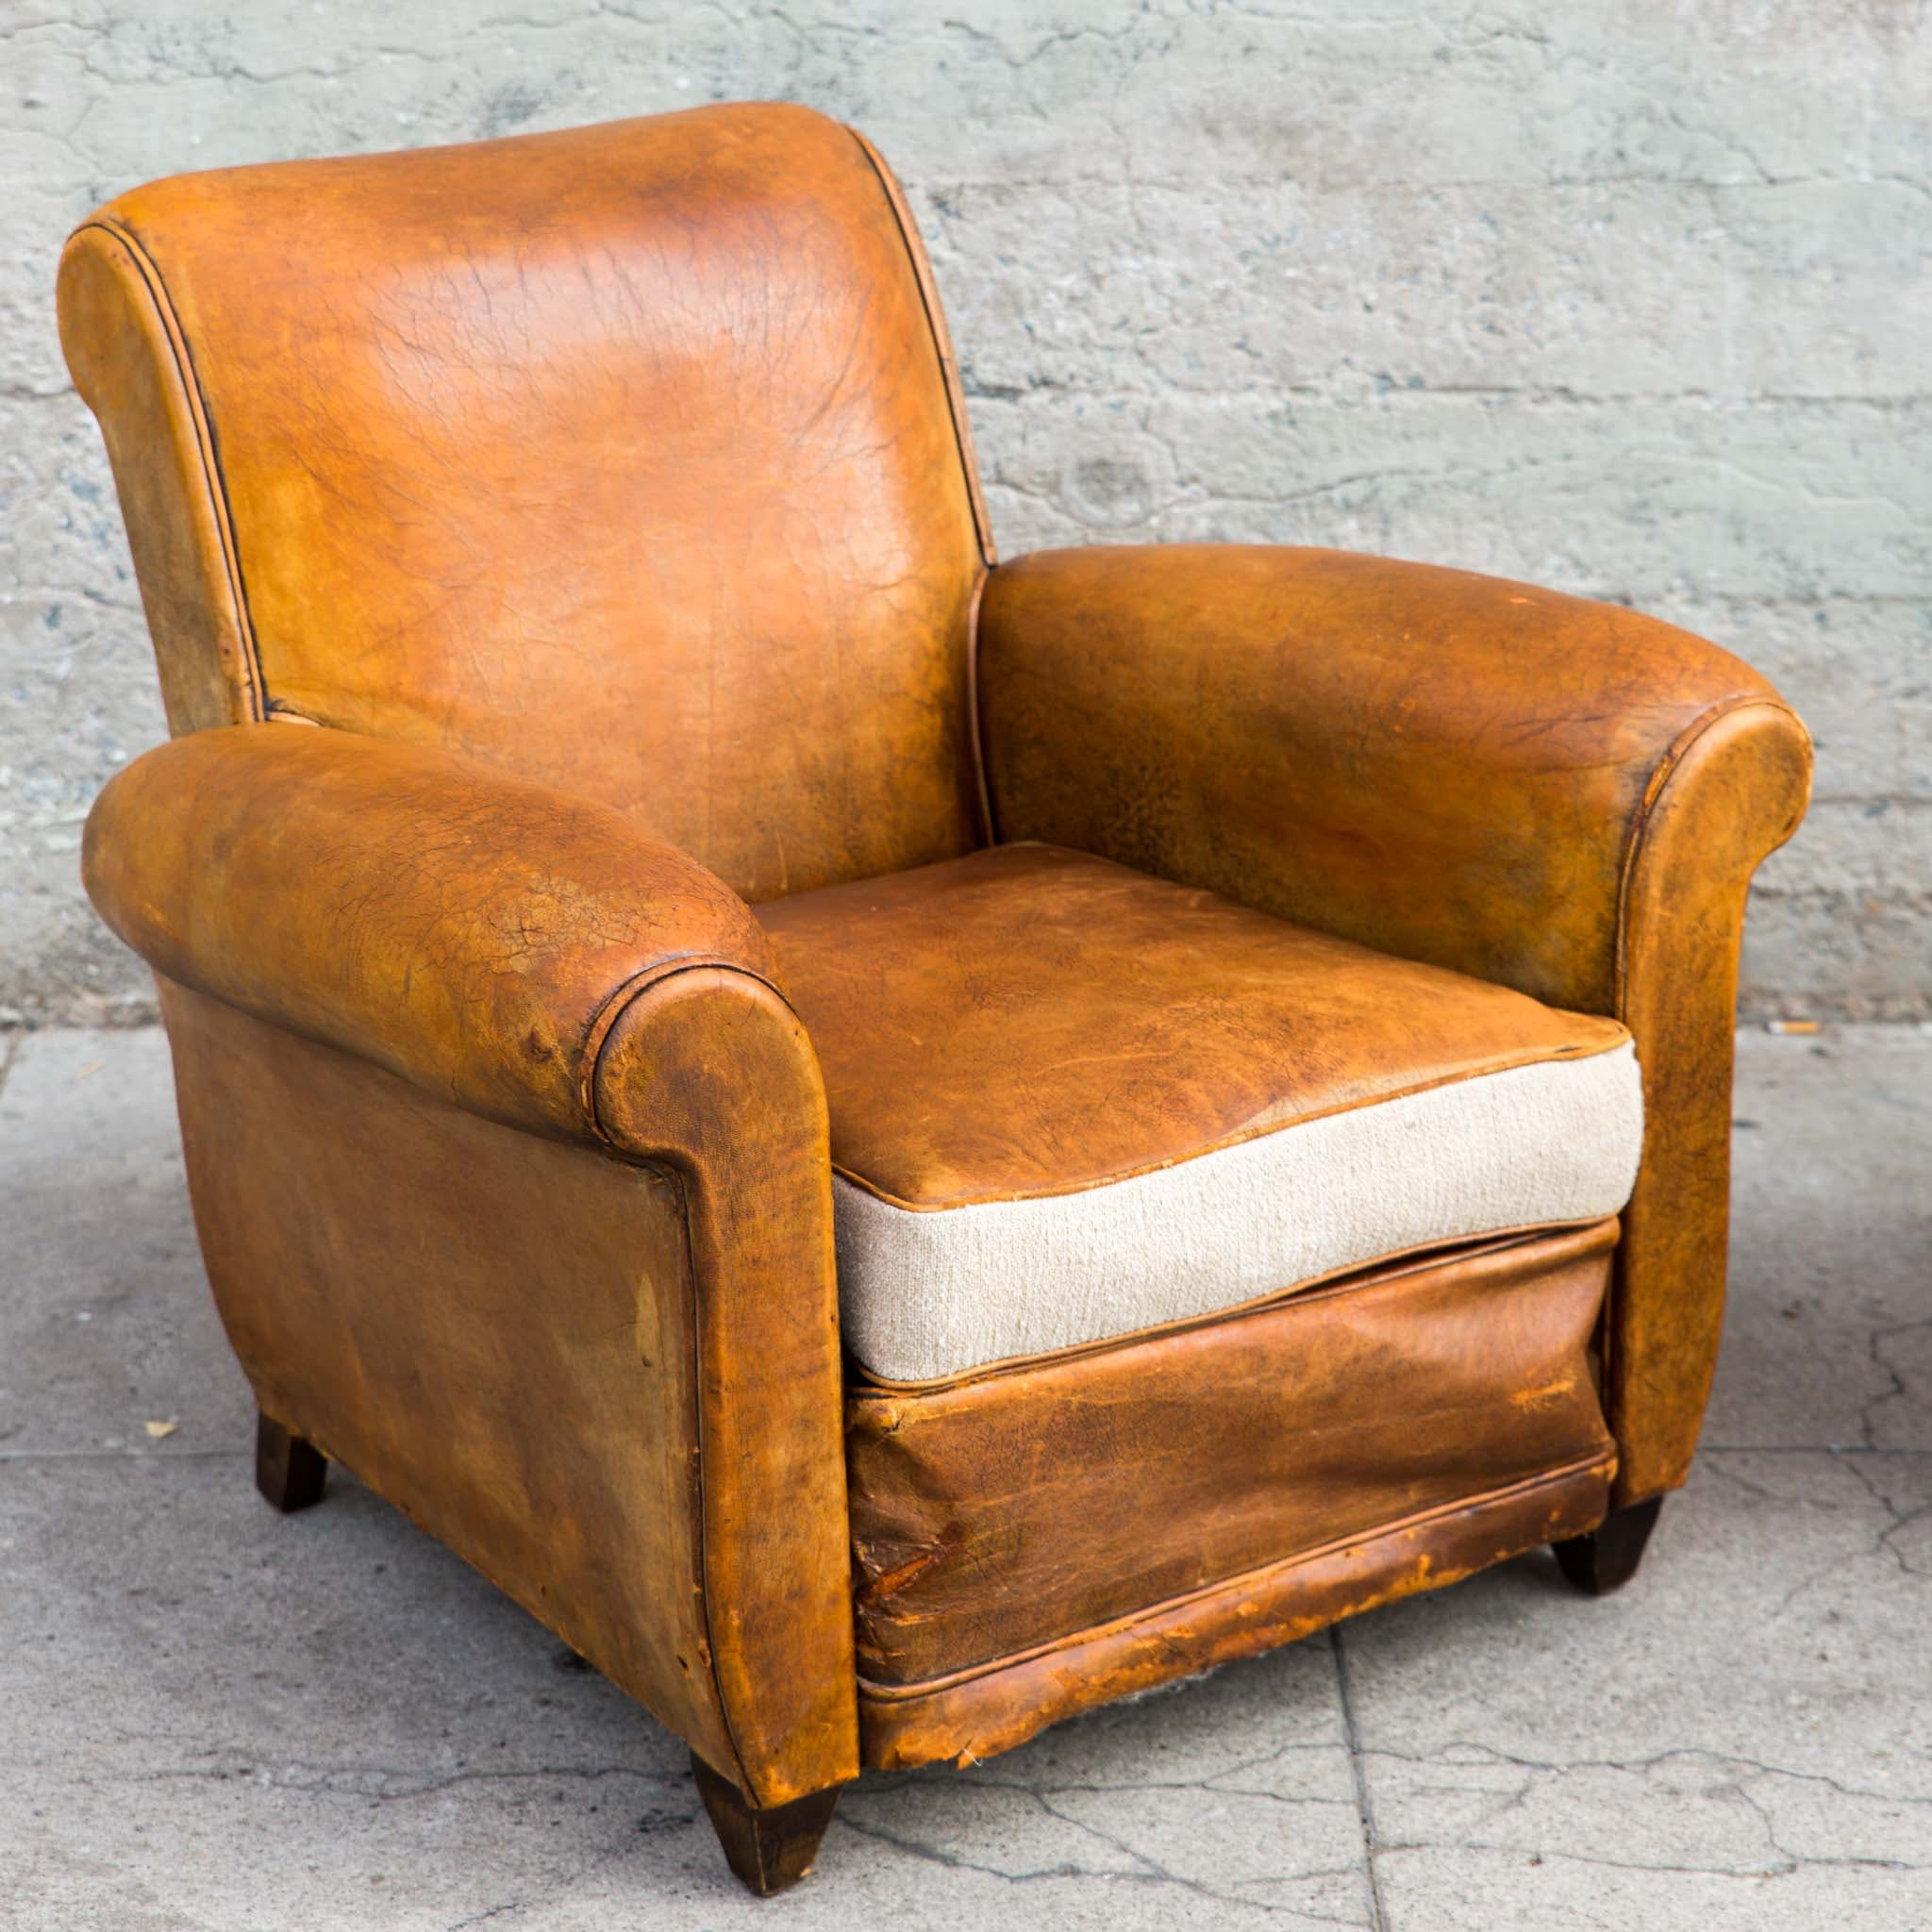 1940s French Club Chairs